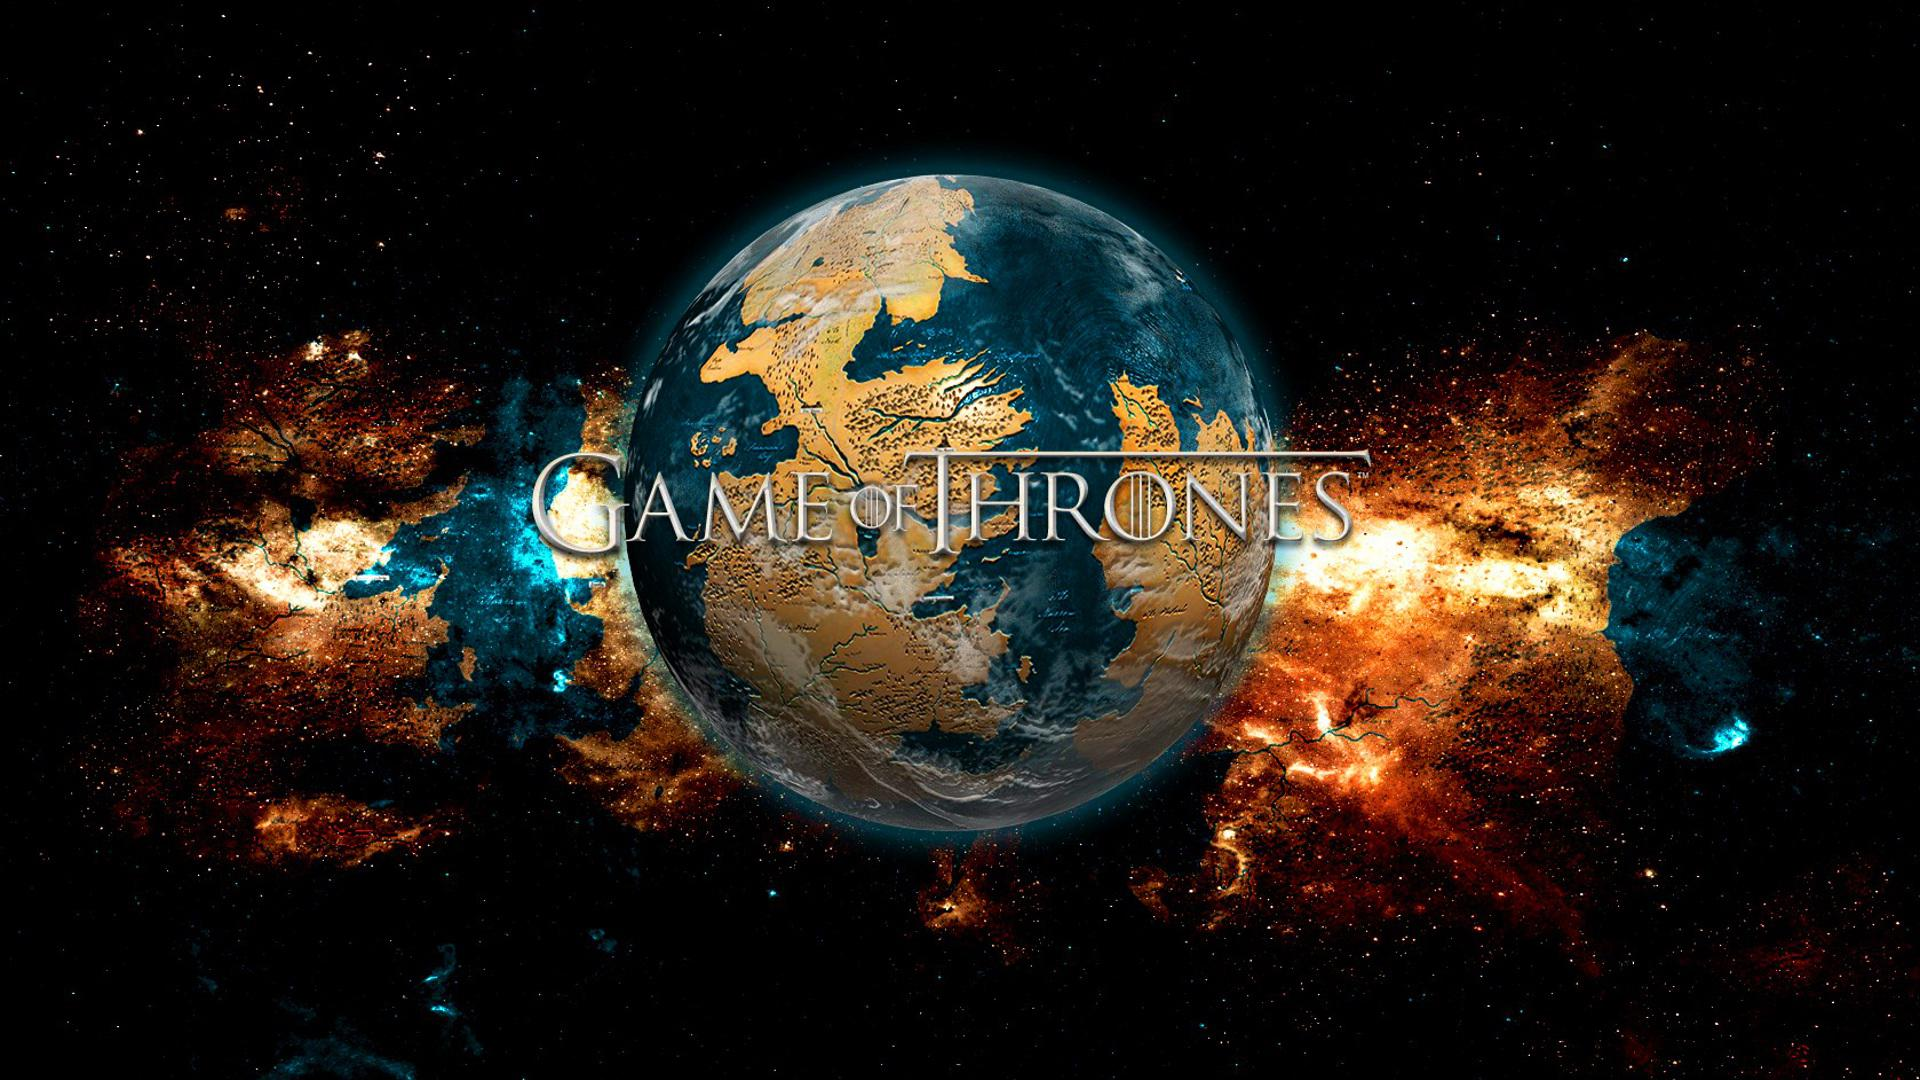 World Of Thrones   Best Game Of Thrones Wallpapers 1920x1080